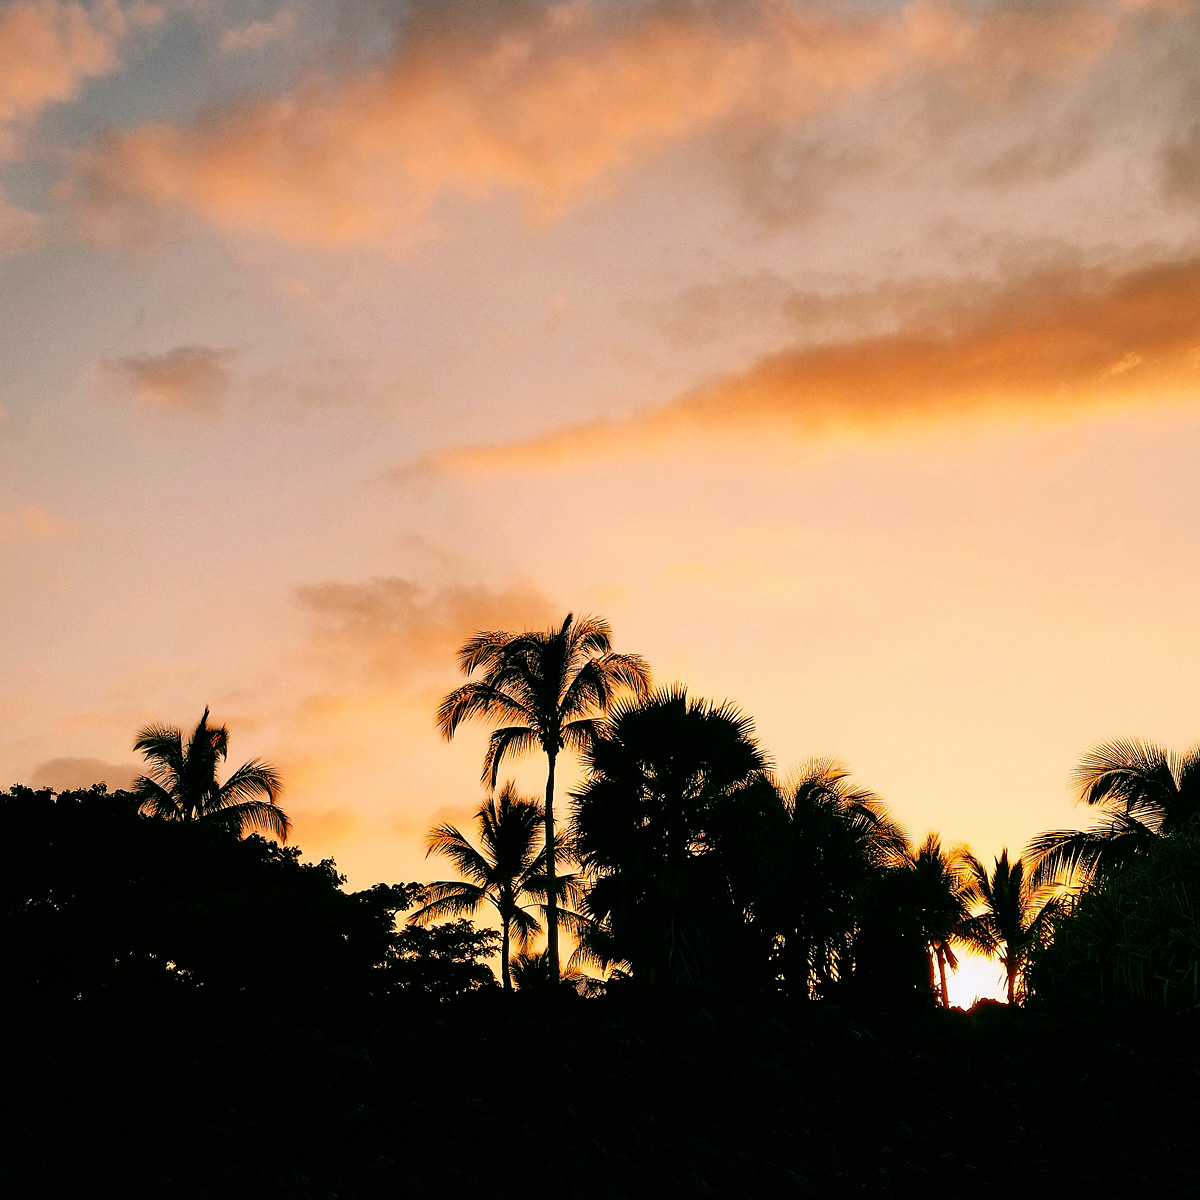 Tropical_Hawaii_Palms_Sunset